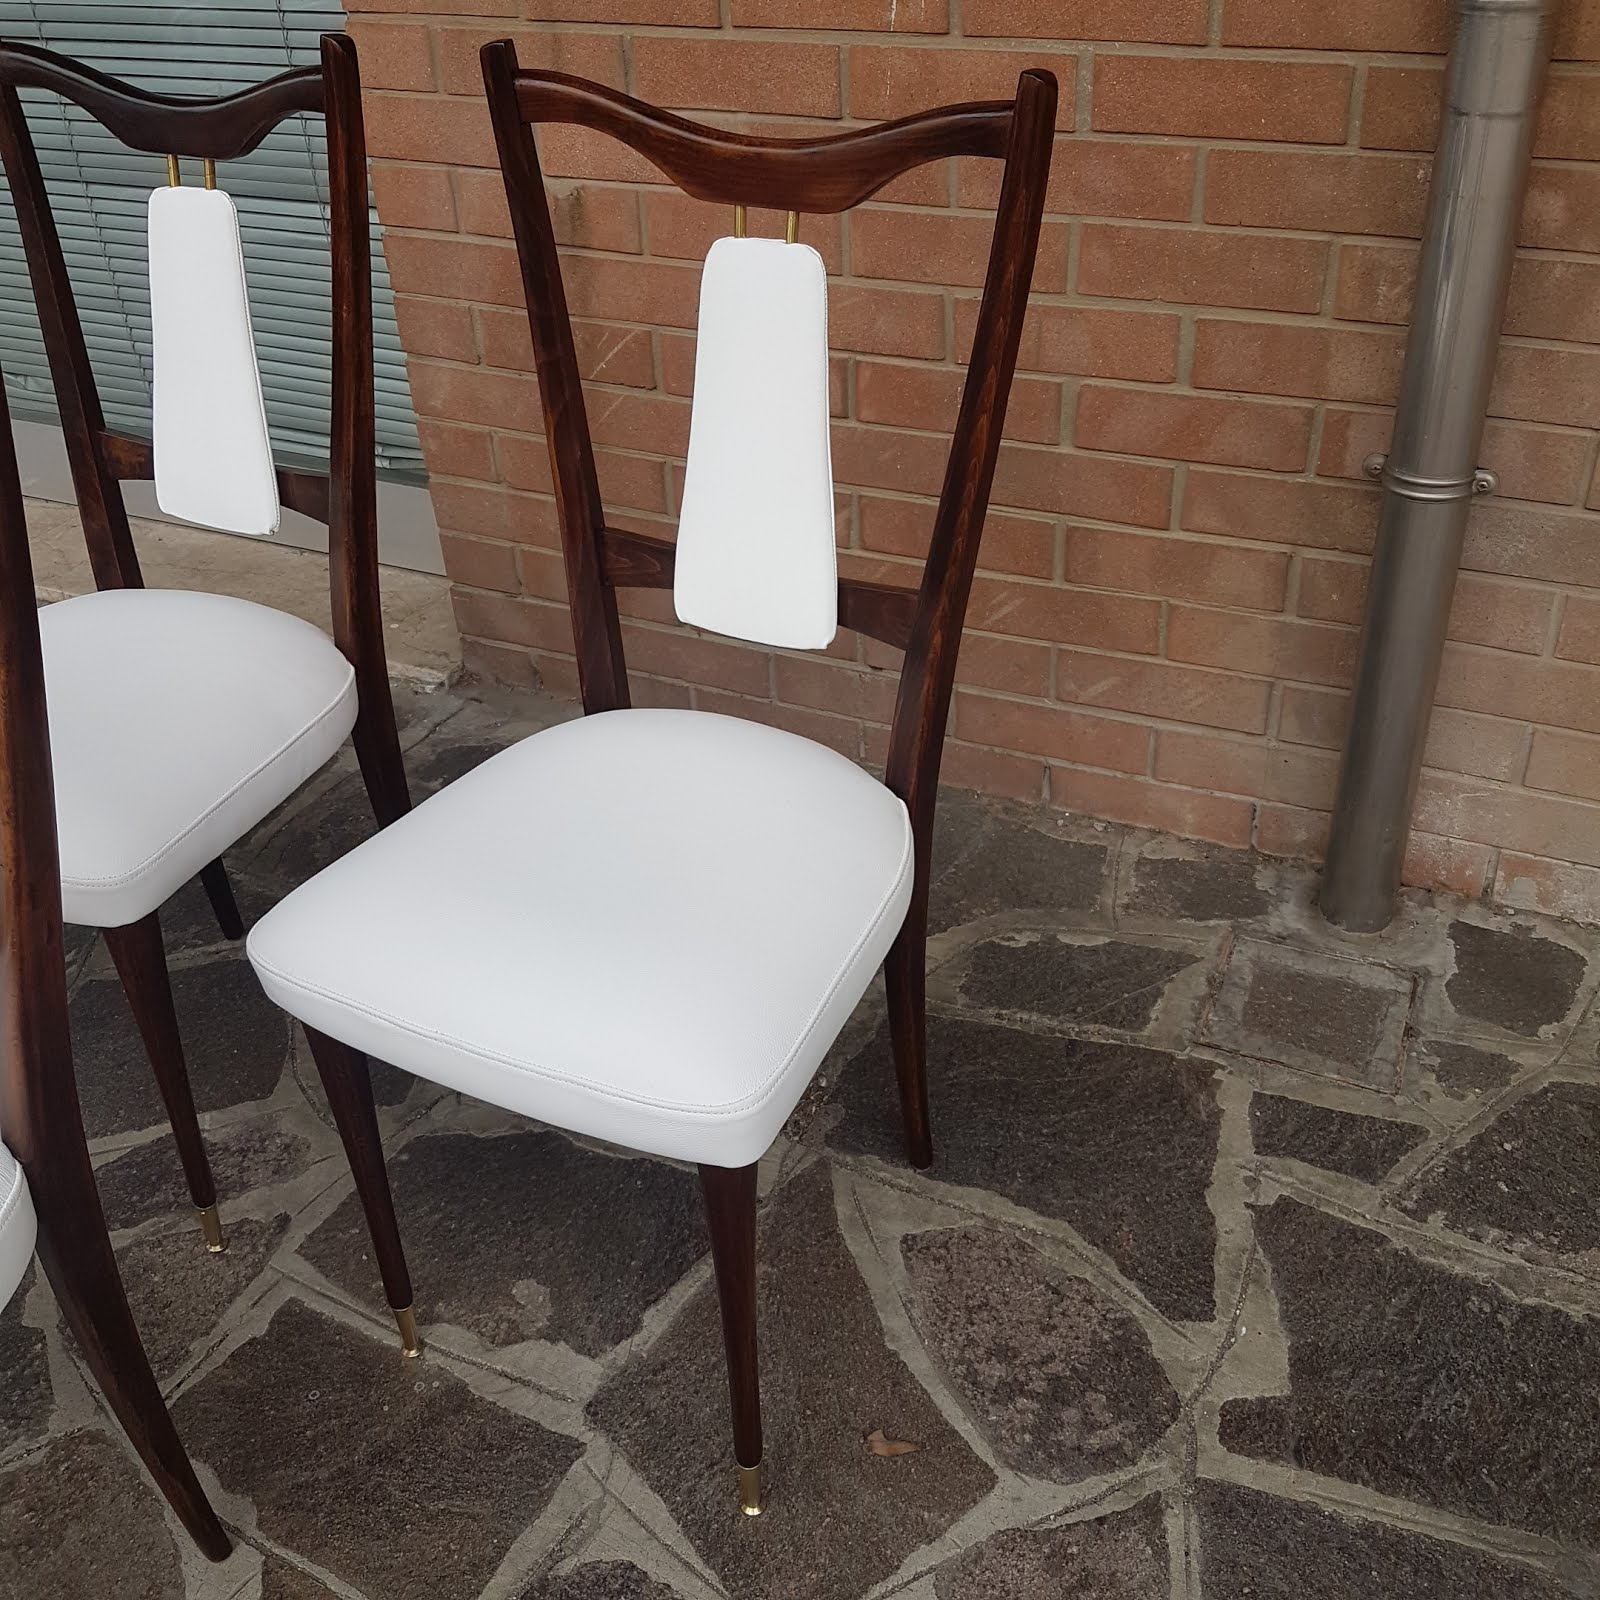 Dining Chairs Italian Design Swing Chair Rental Momentoitalia Furniture Blog Designitalia Welcomes You To A Selection Of Authentic 20th Century Modern And Mid We Pride Ourselves In Outsourcing